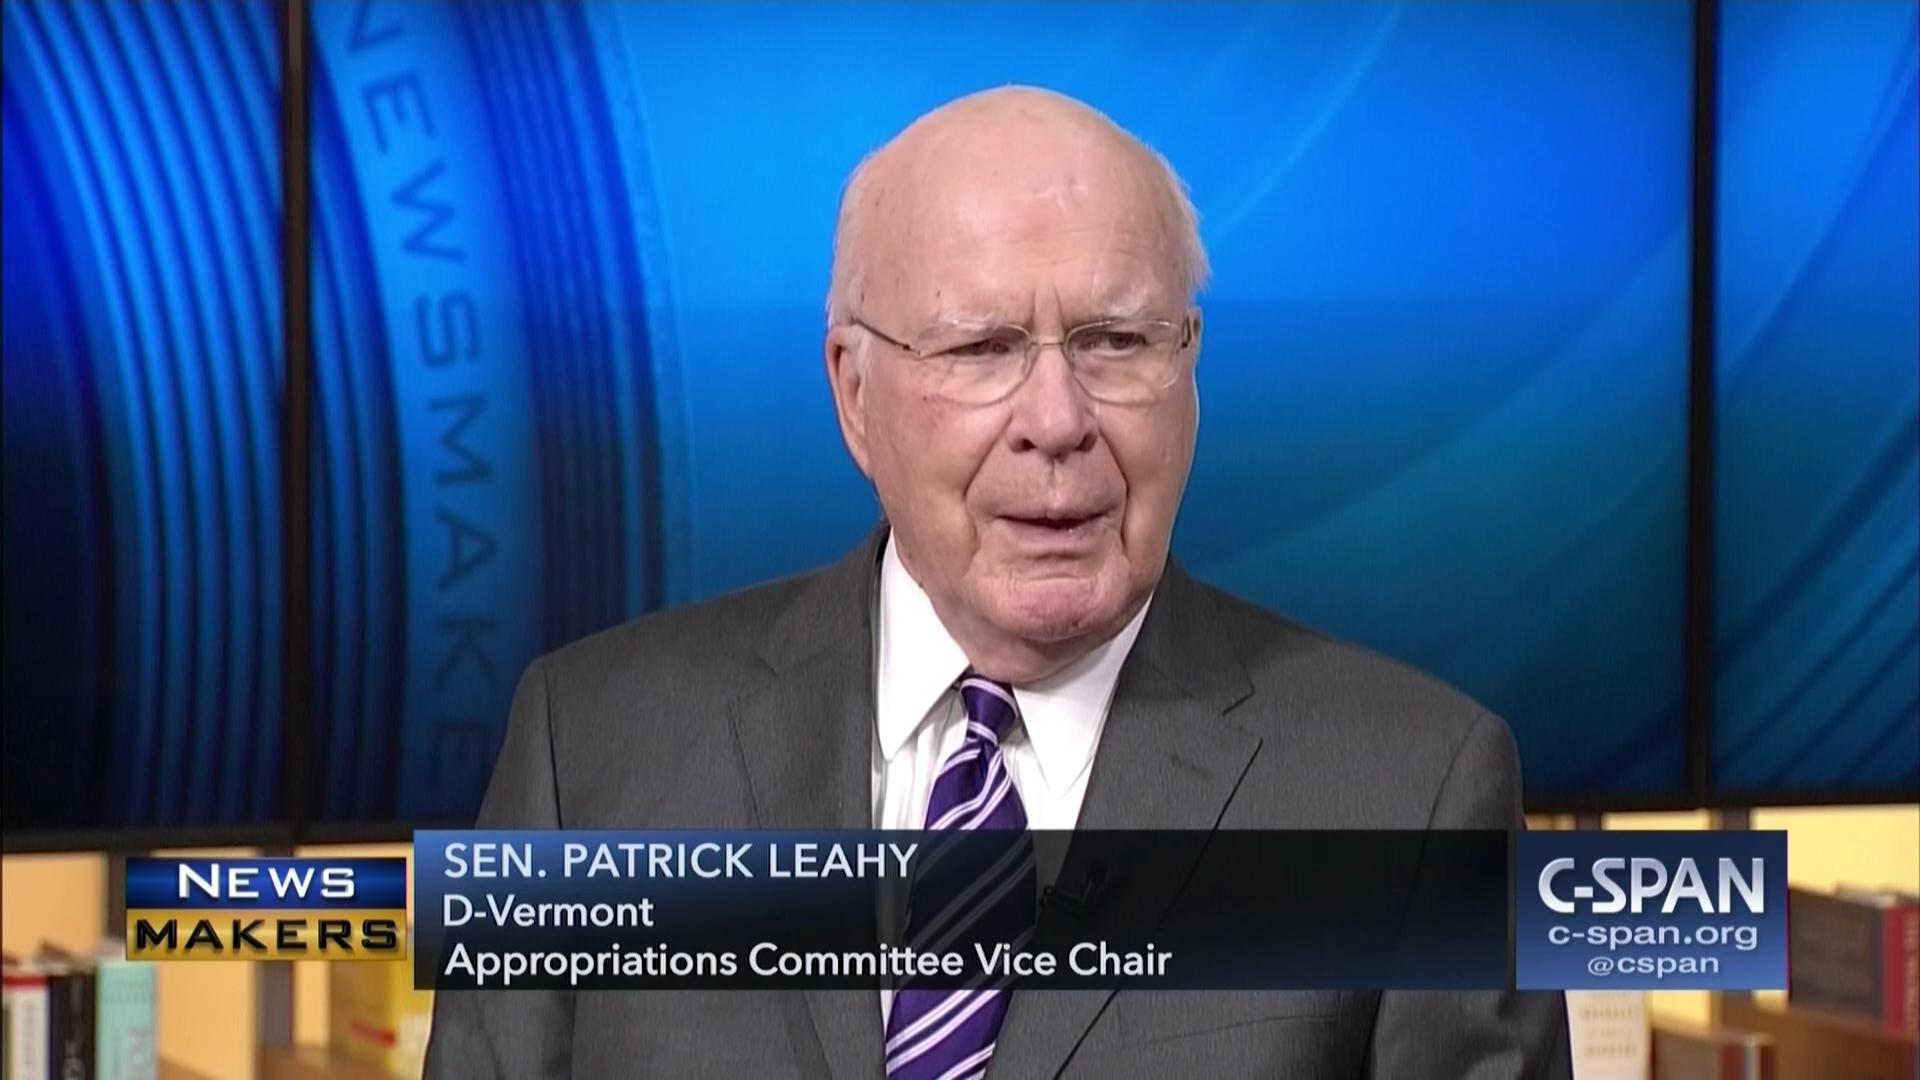 Image result for IMAGES Senator Patrick Leahy on the Senate Appropriations Committee